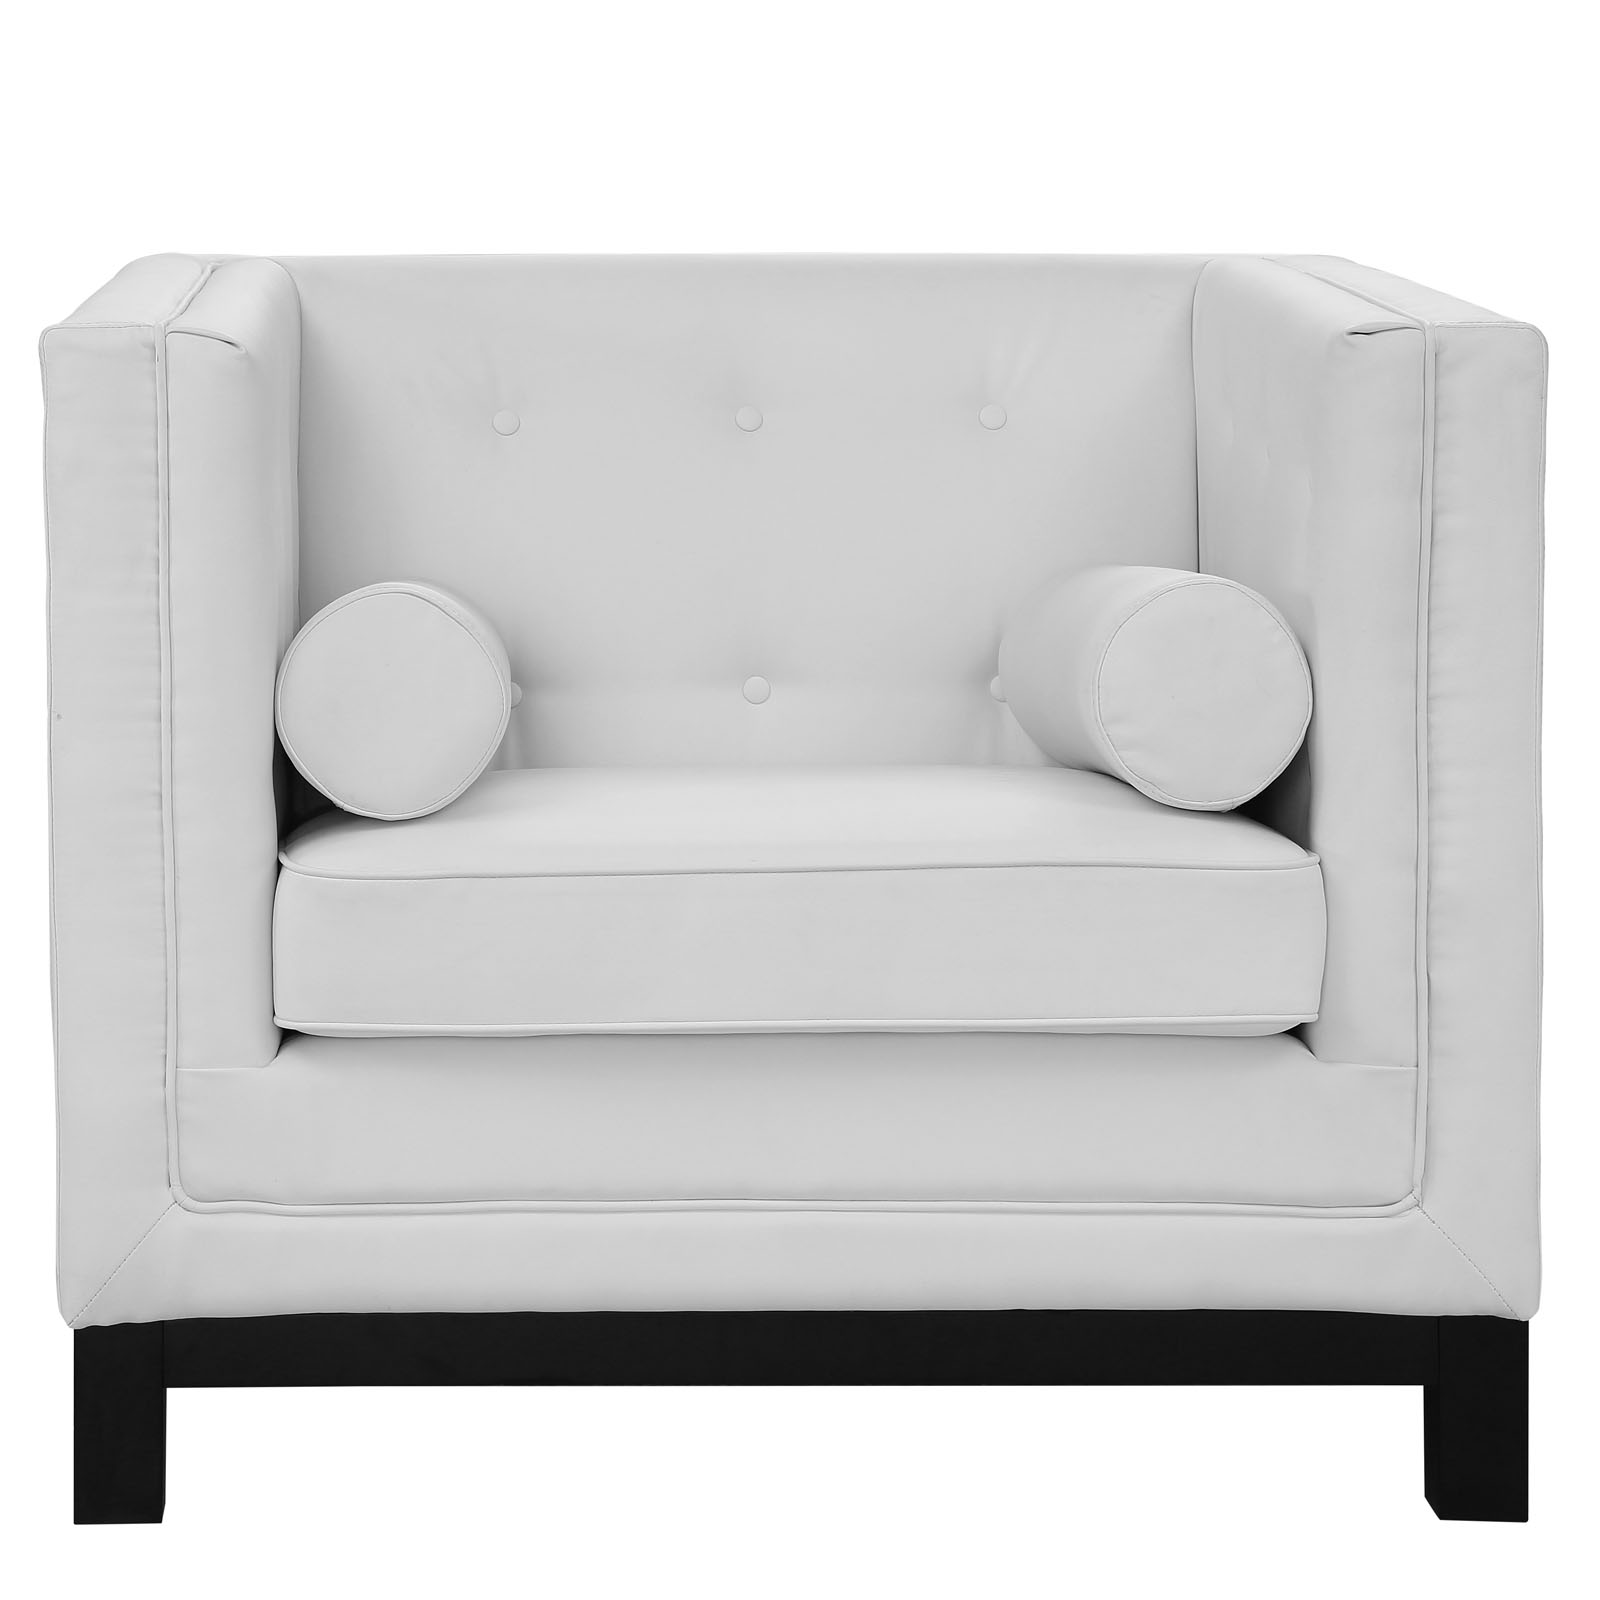 empire sofa armchair modern furniture brickell collection. Black Bedroom Furniture Sets. Home Design Ideas